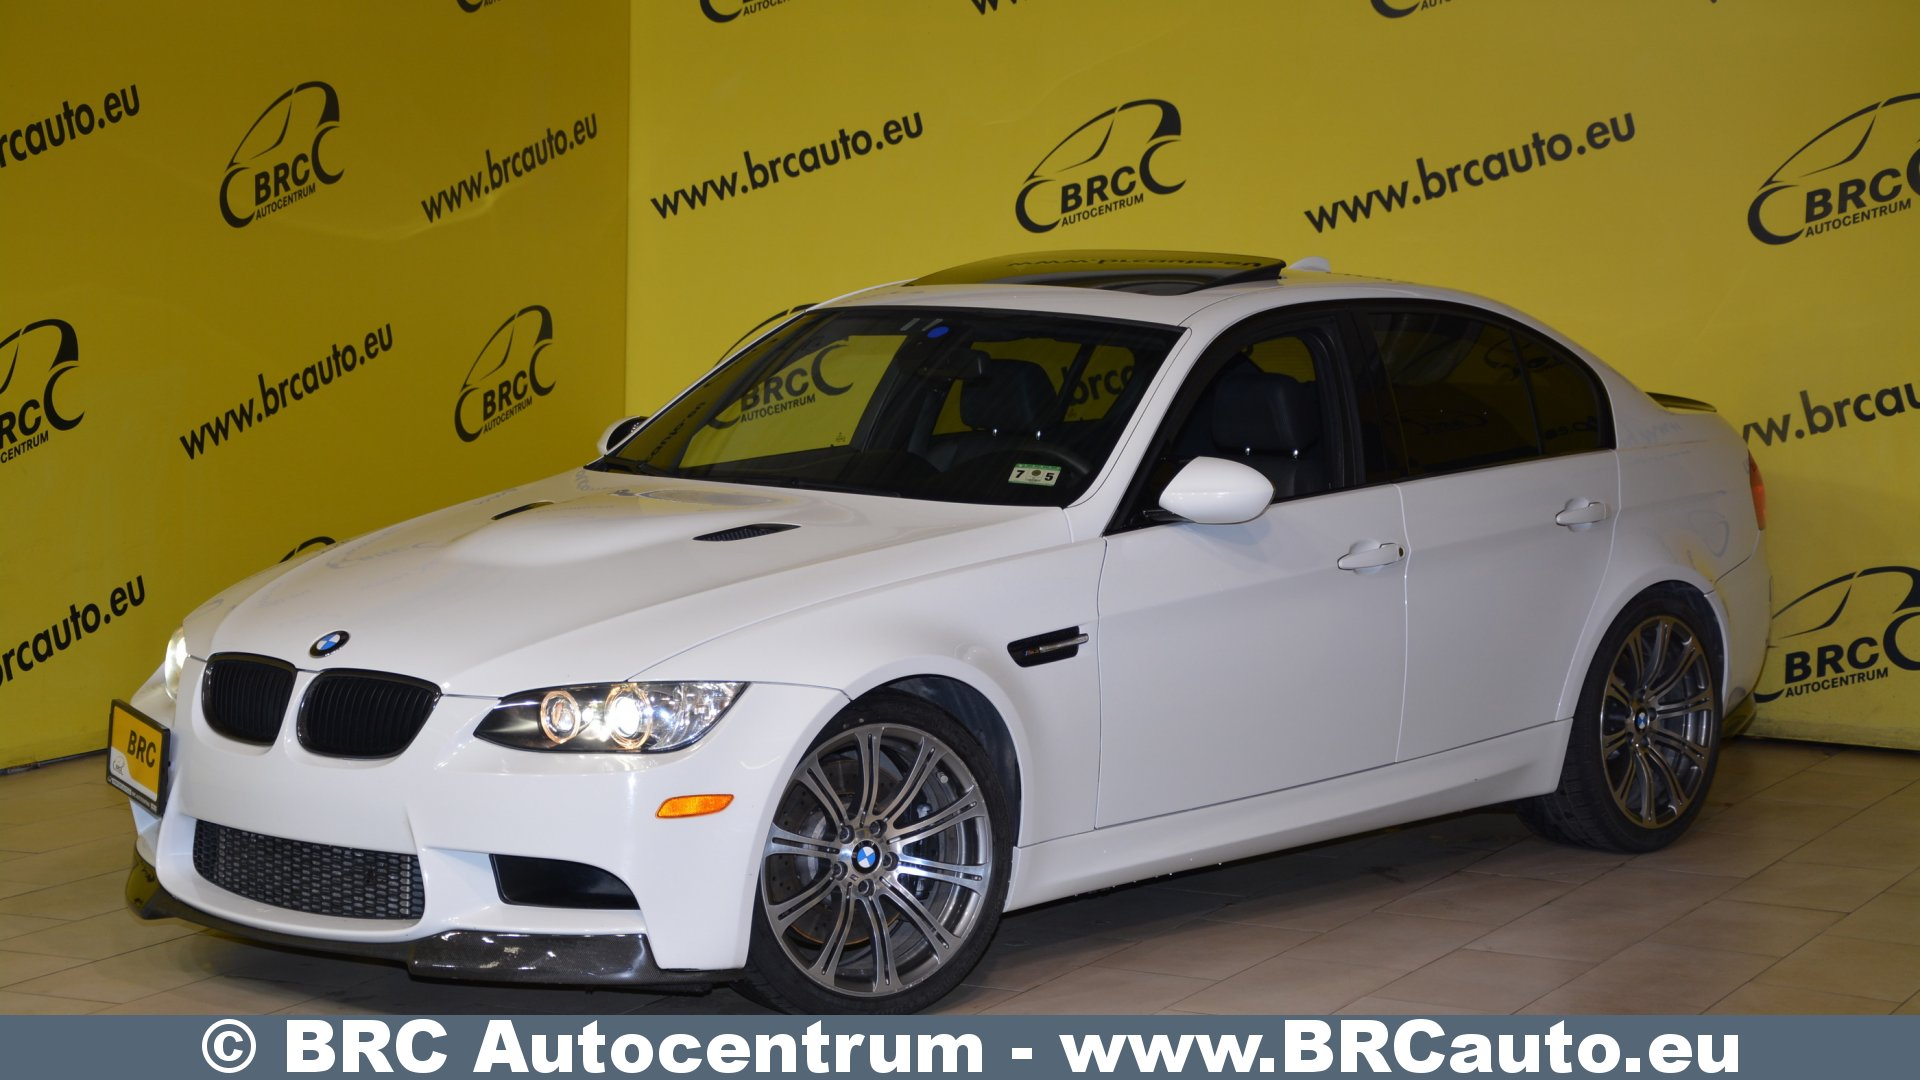 BMW M3 4.0i E90 - 507 BHP/PS  Reservation